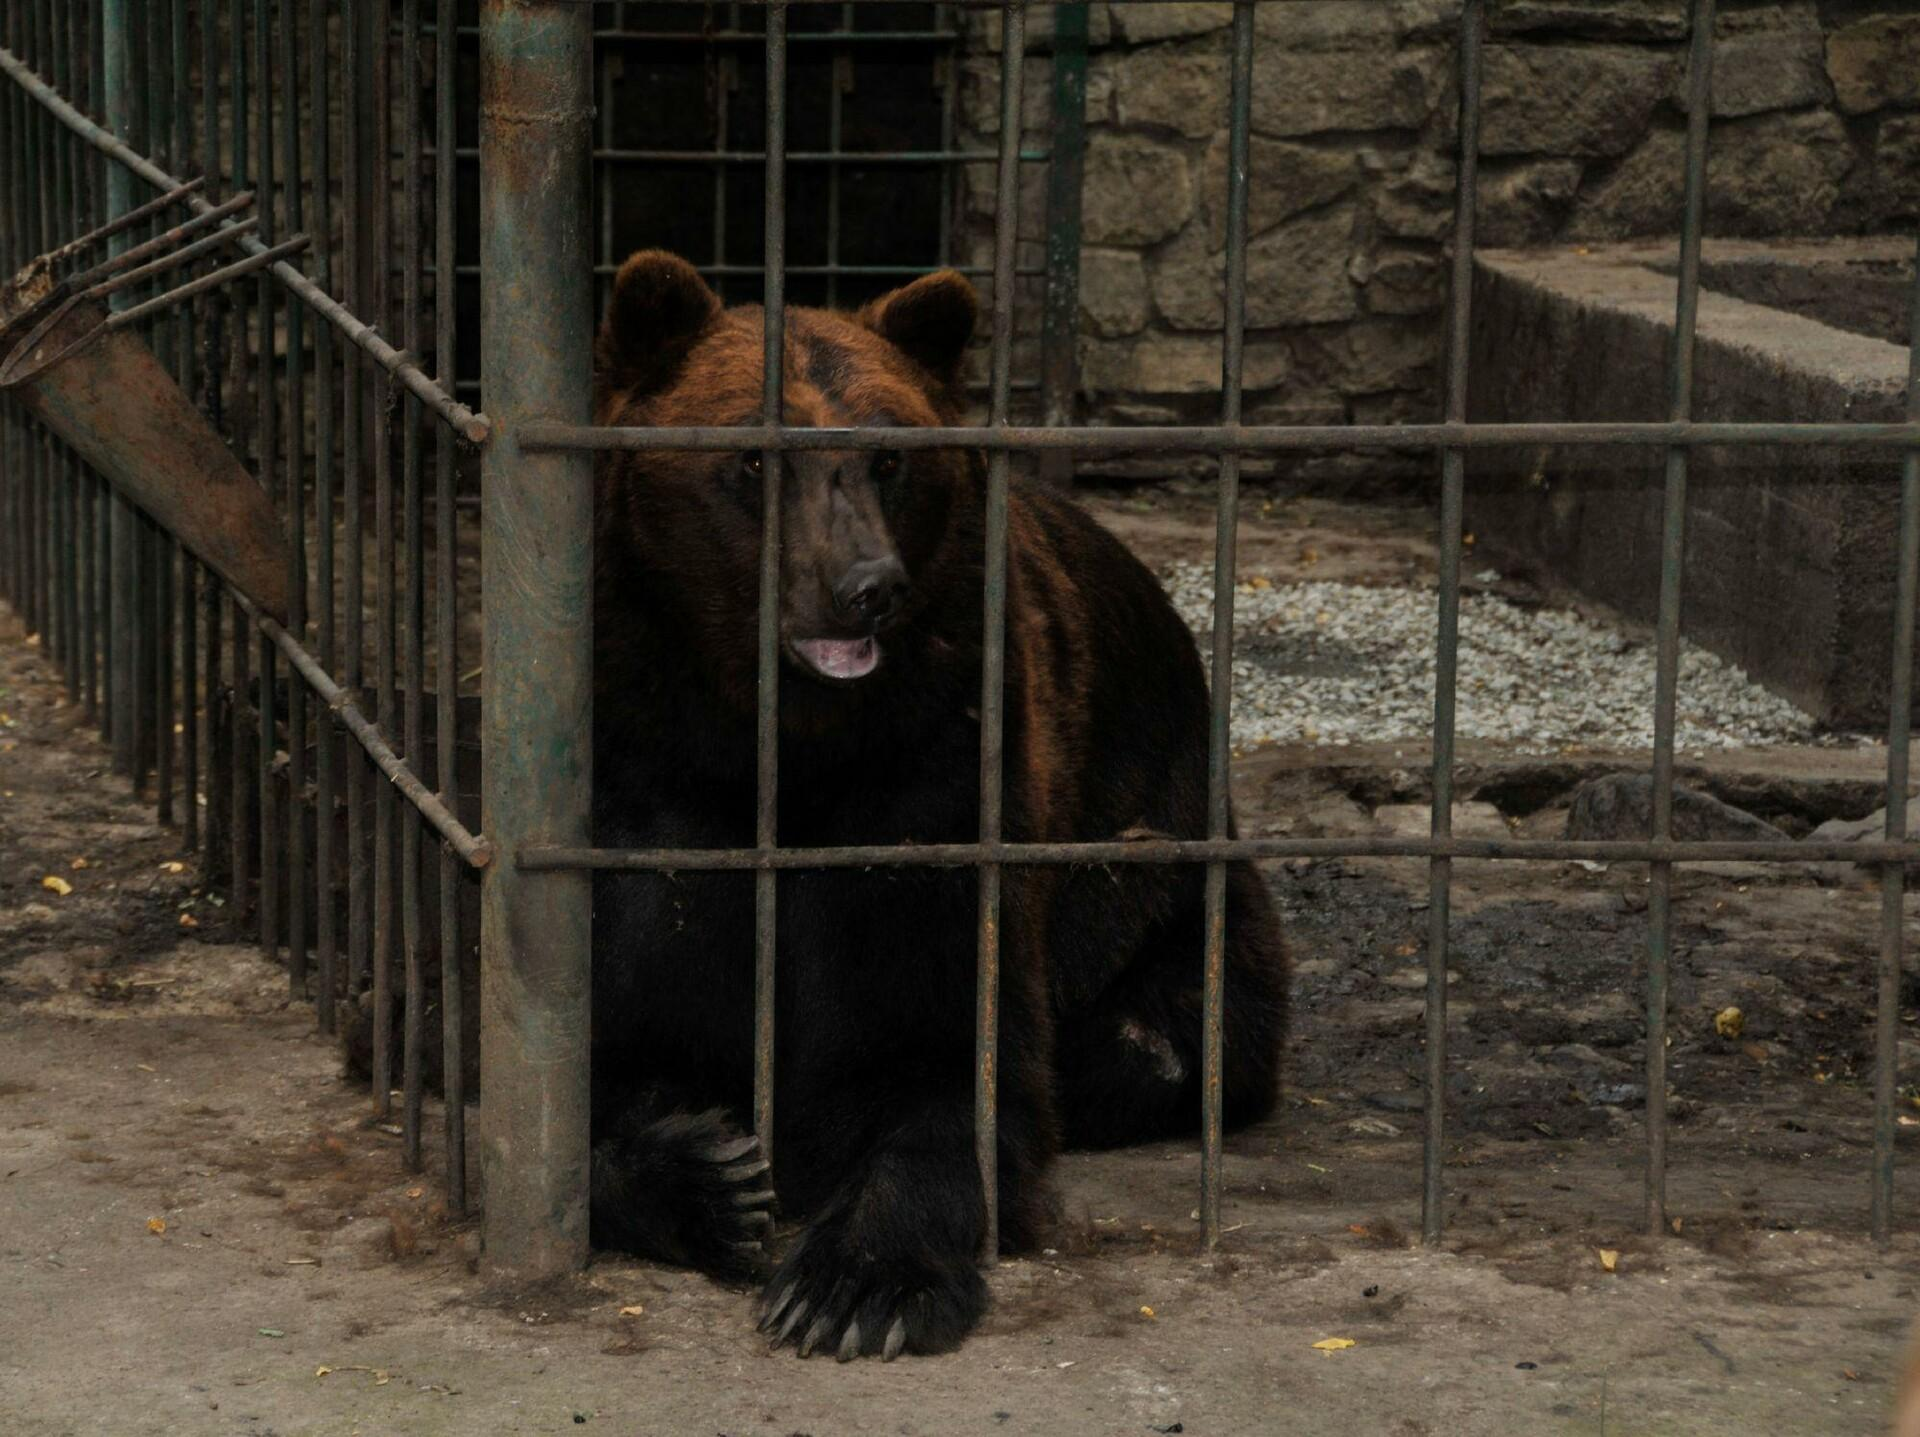 Bear Potap in a cage